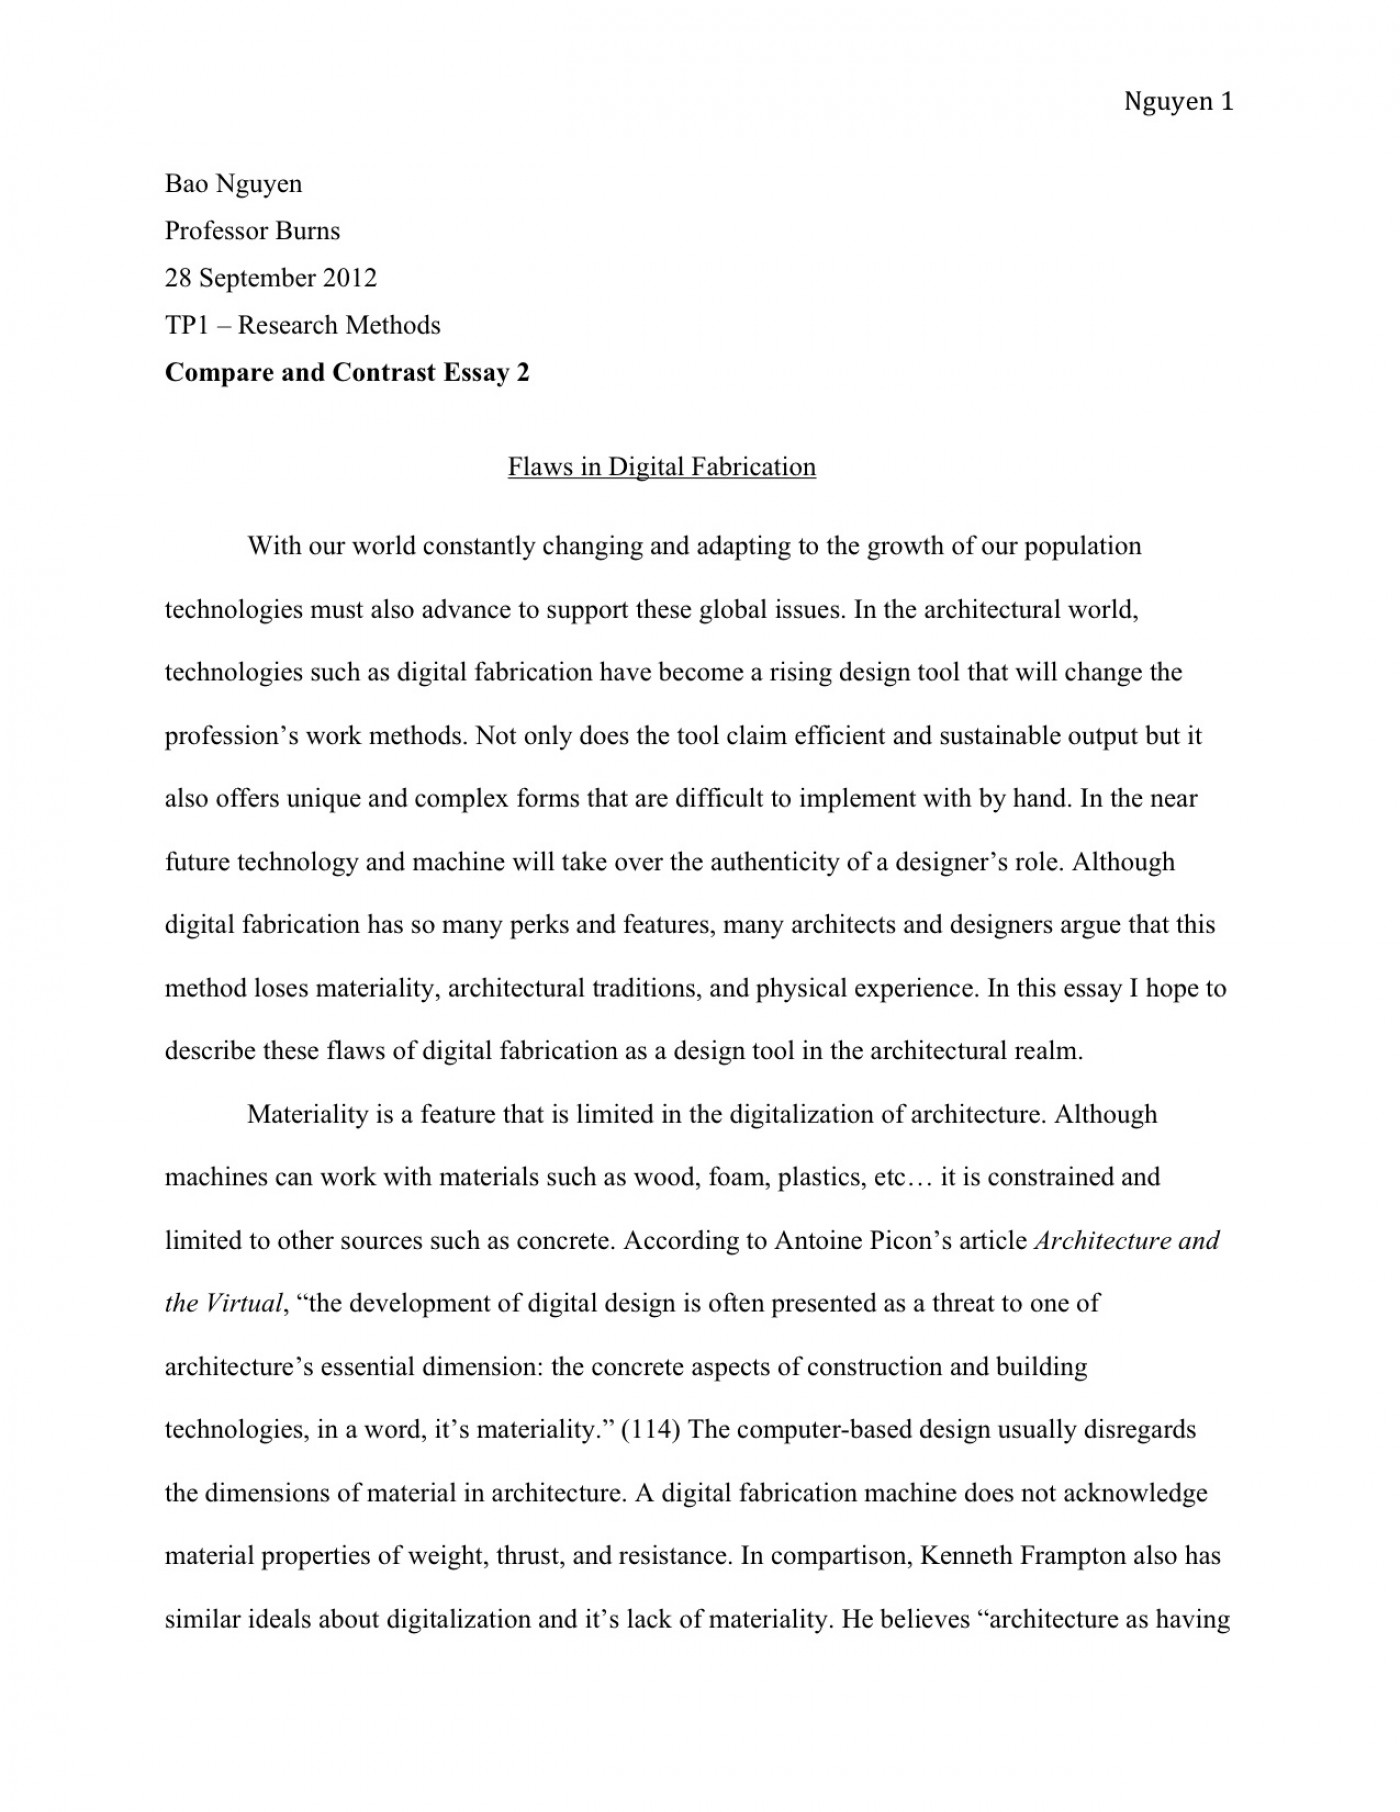 005 How To Write An Essay Example Tp1 3 Shocking About Myself For A Scholarship Excellent Conclusion Pdf 1400